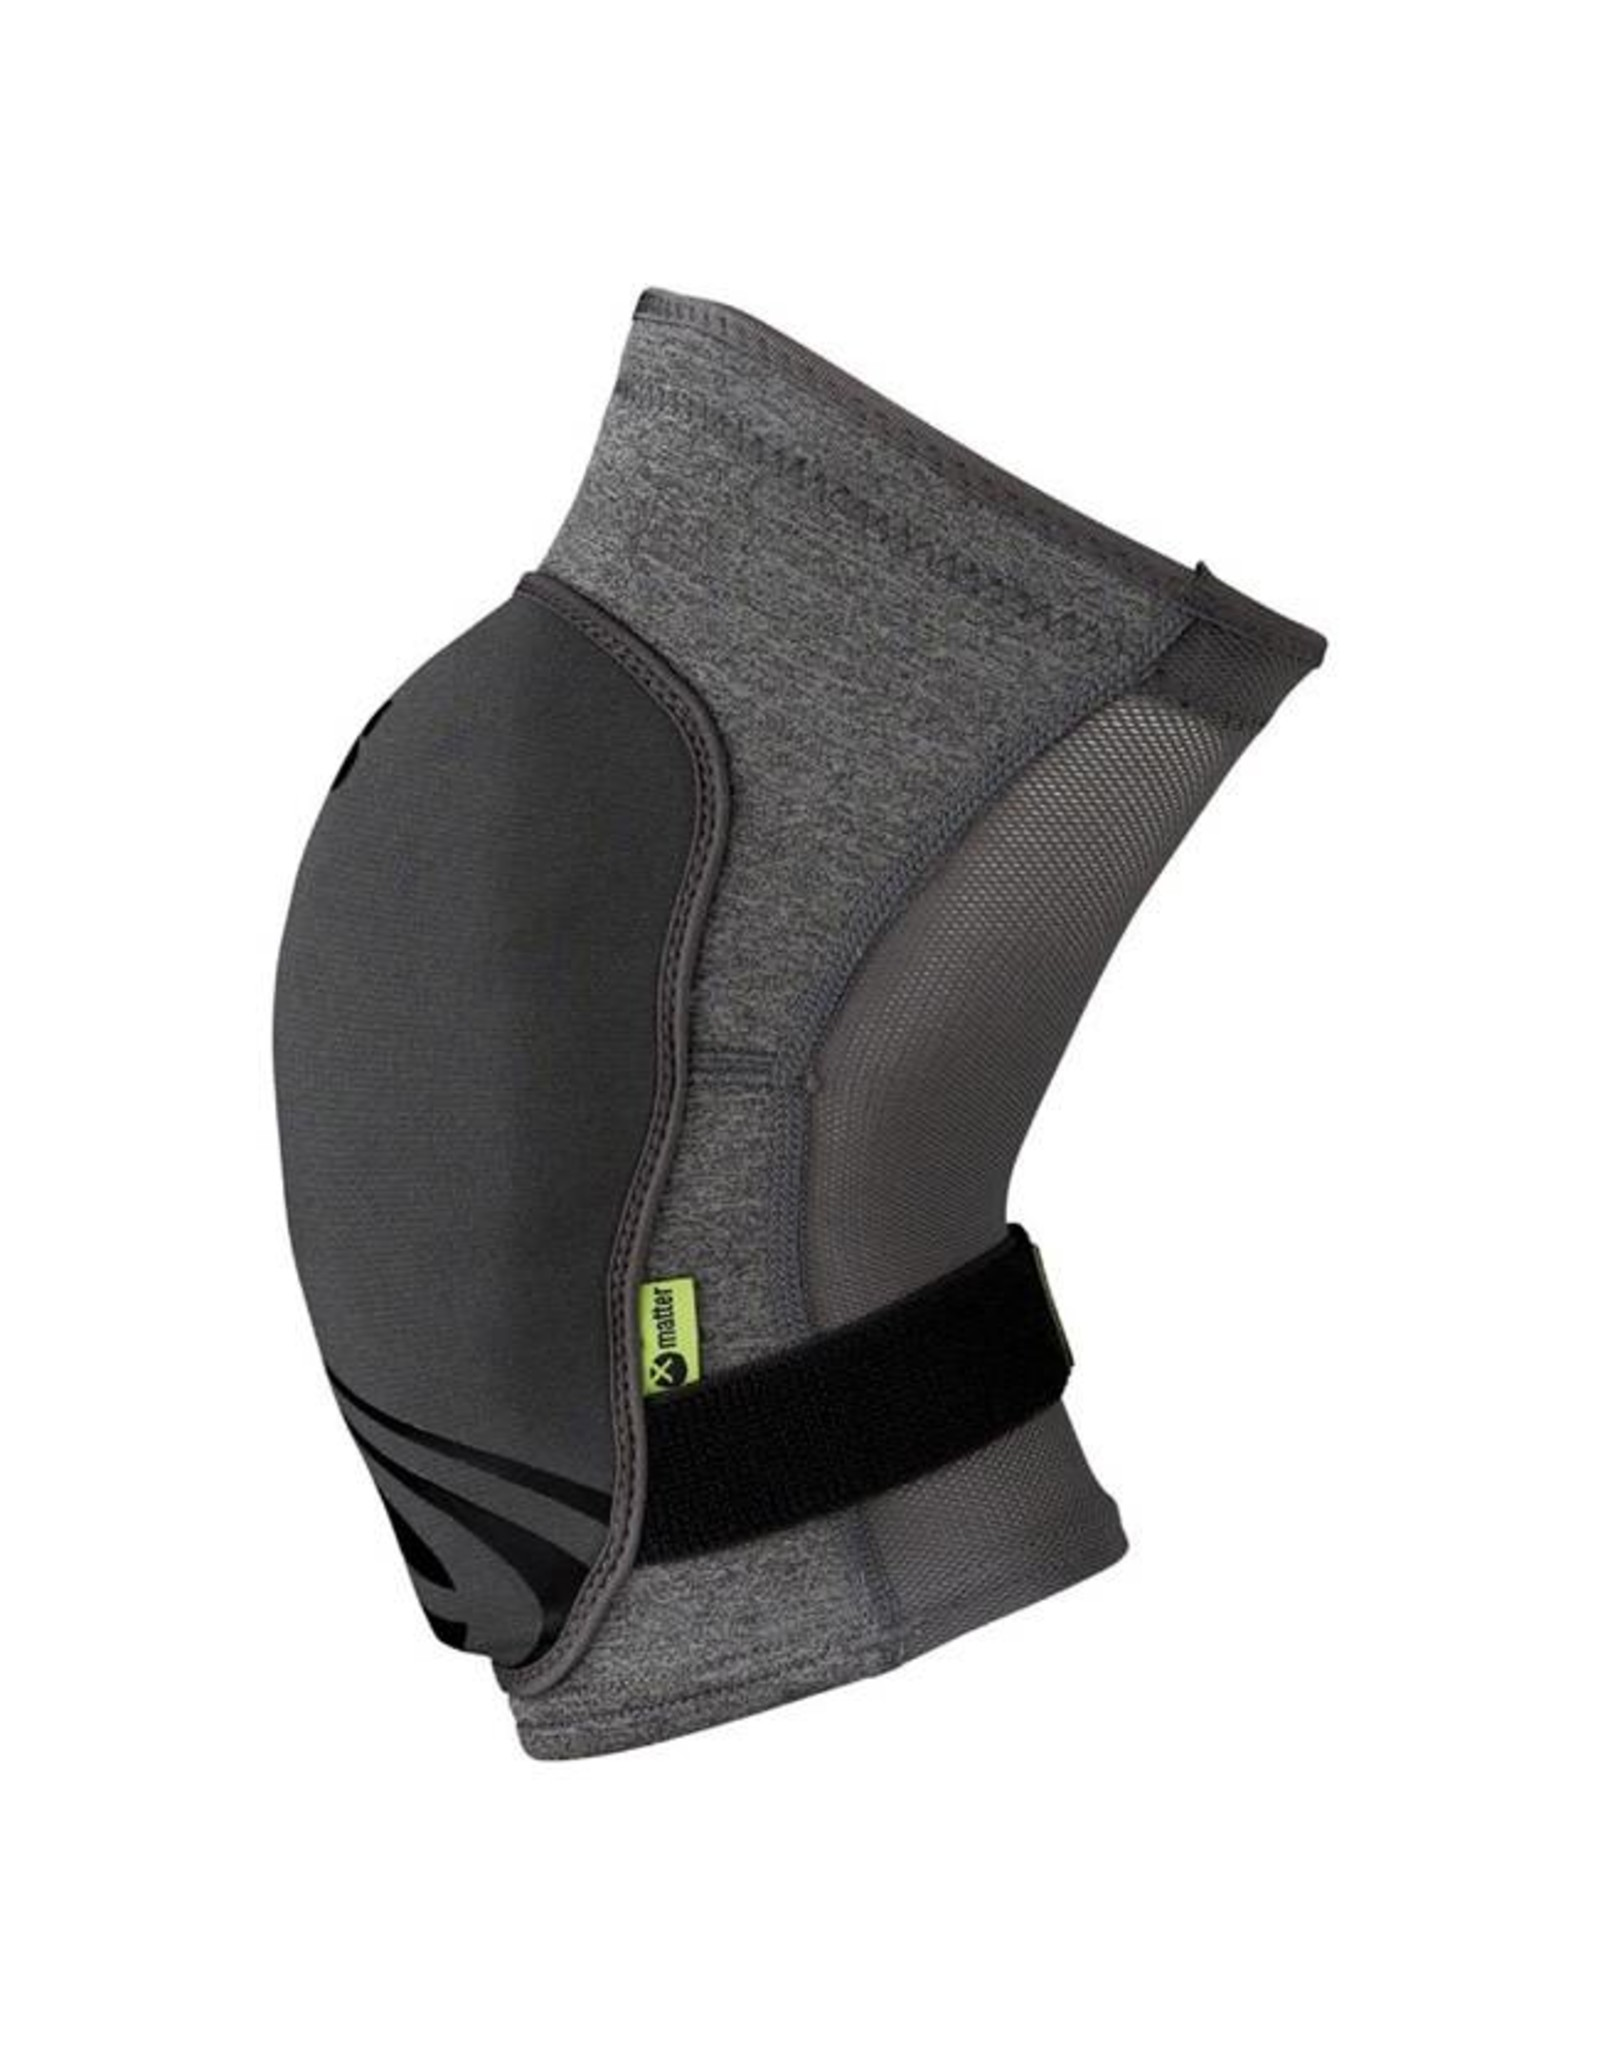 IXS iXS Flow Evo+ Knee Pads: Gray SM